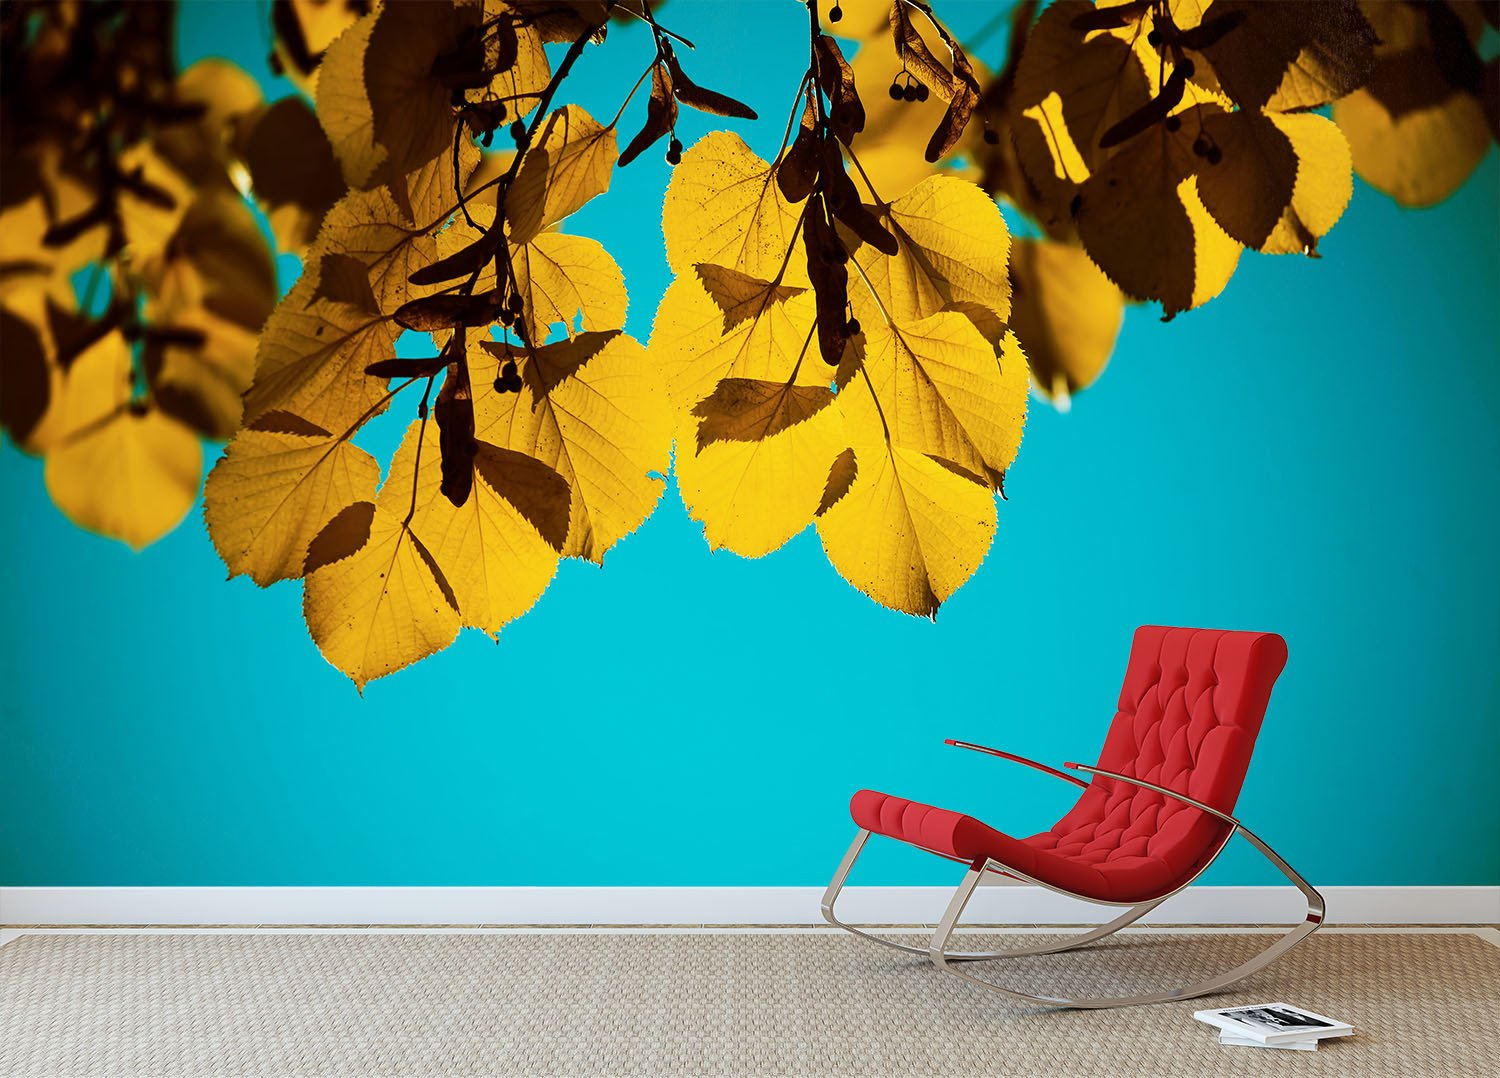 Hanging Leaves Wallpaper AJ Wallpaper